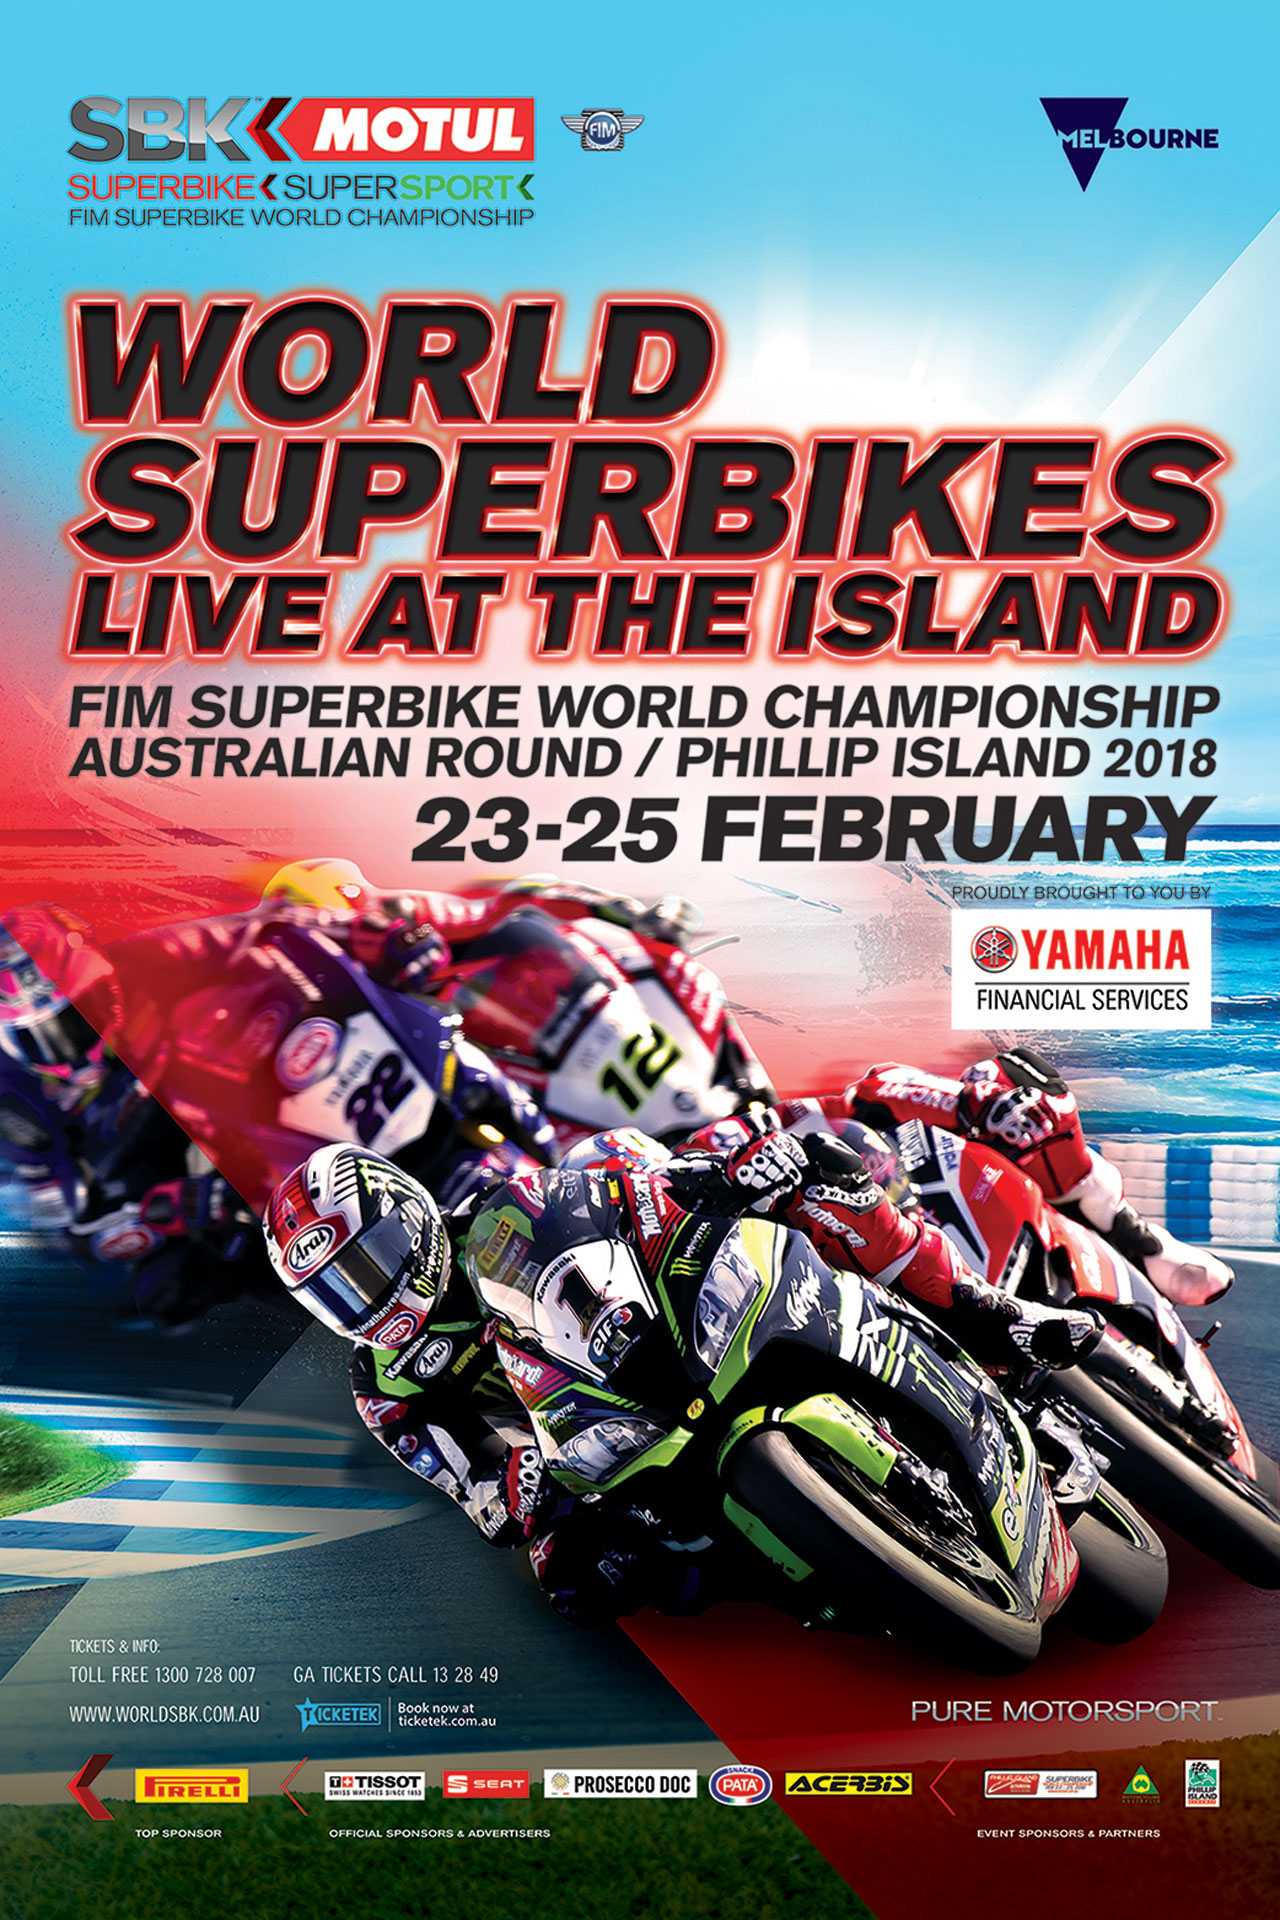 WorldSBK returns to PI in 2018 - Tickets on sale now! - Bike Review